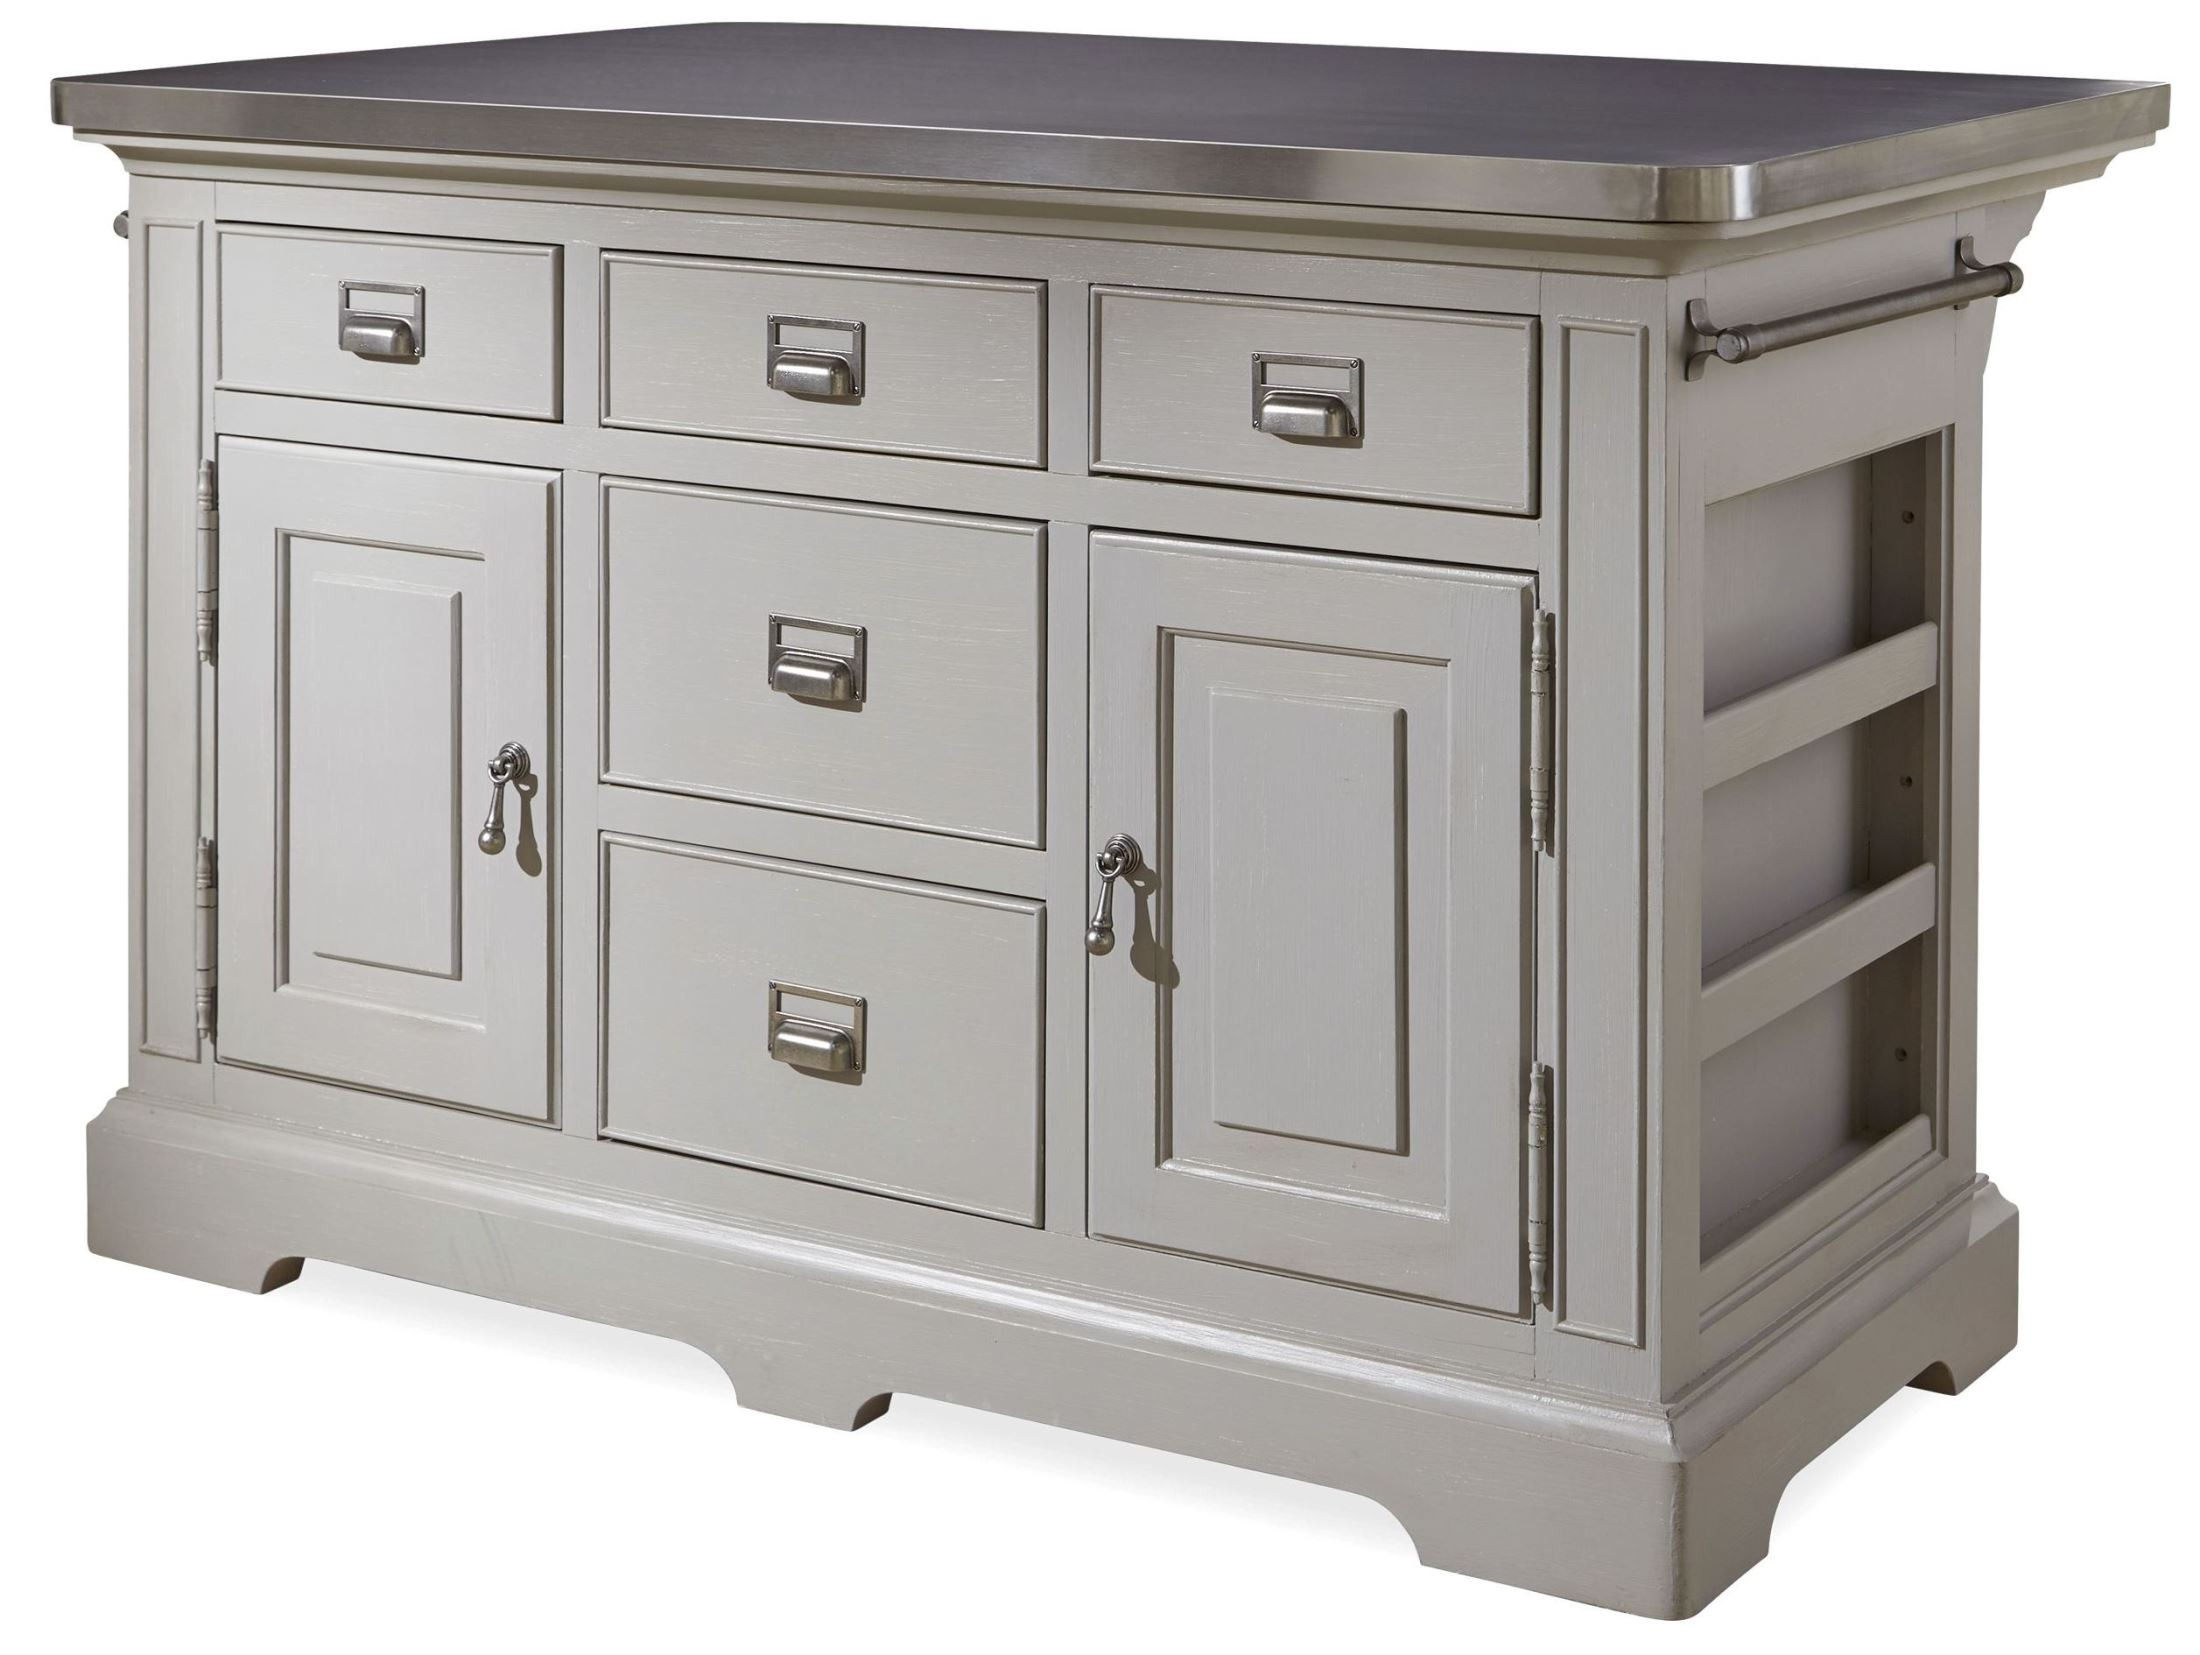 Dogwood Cobblestone The Kitchen Island From Paula Deen